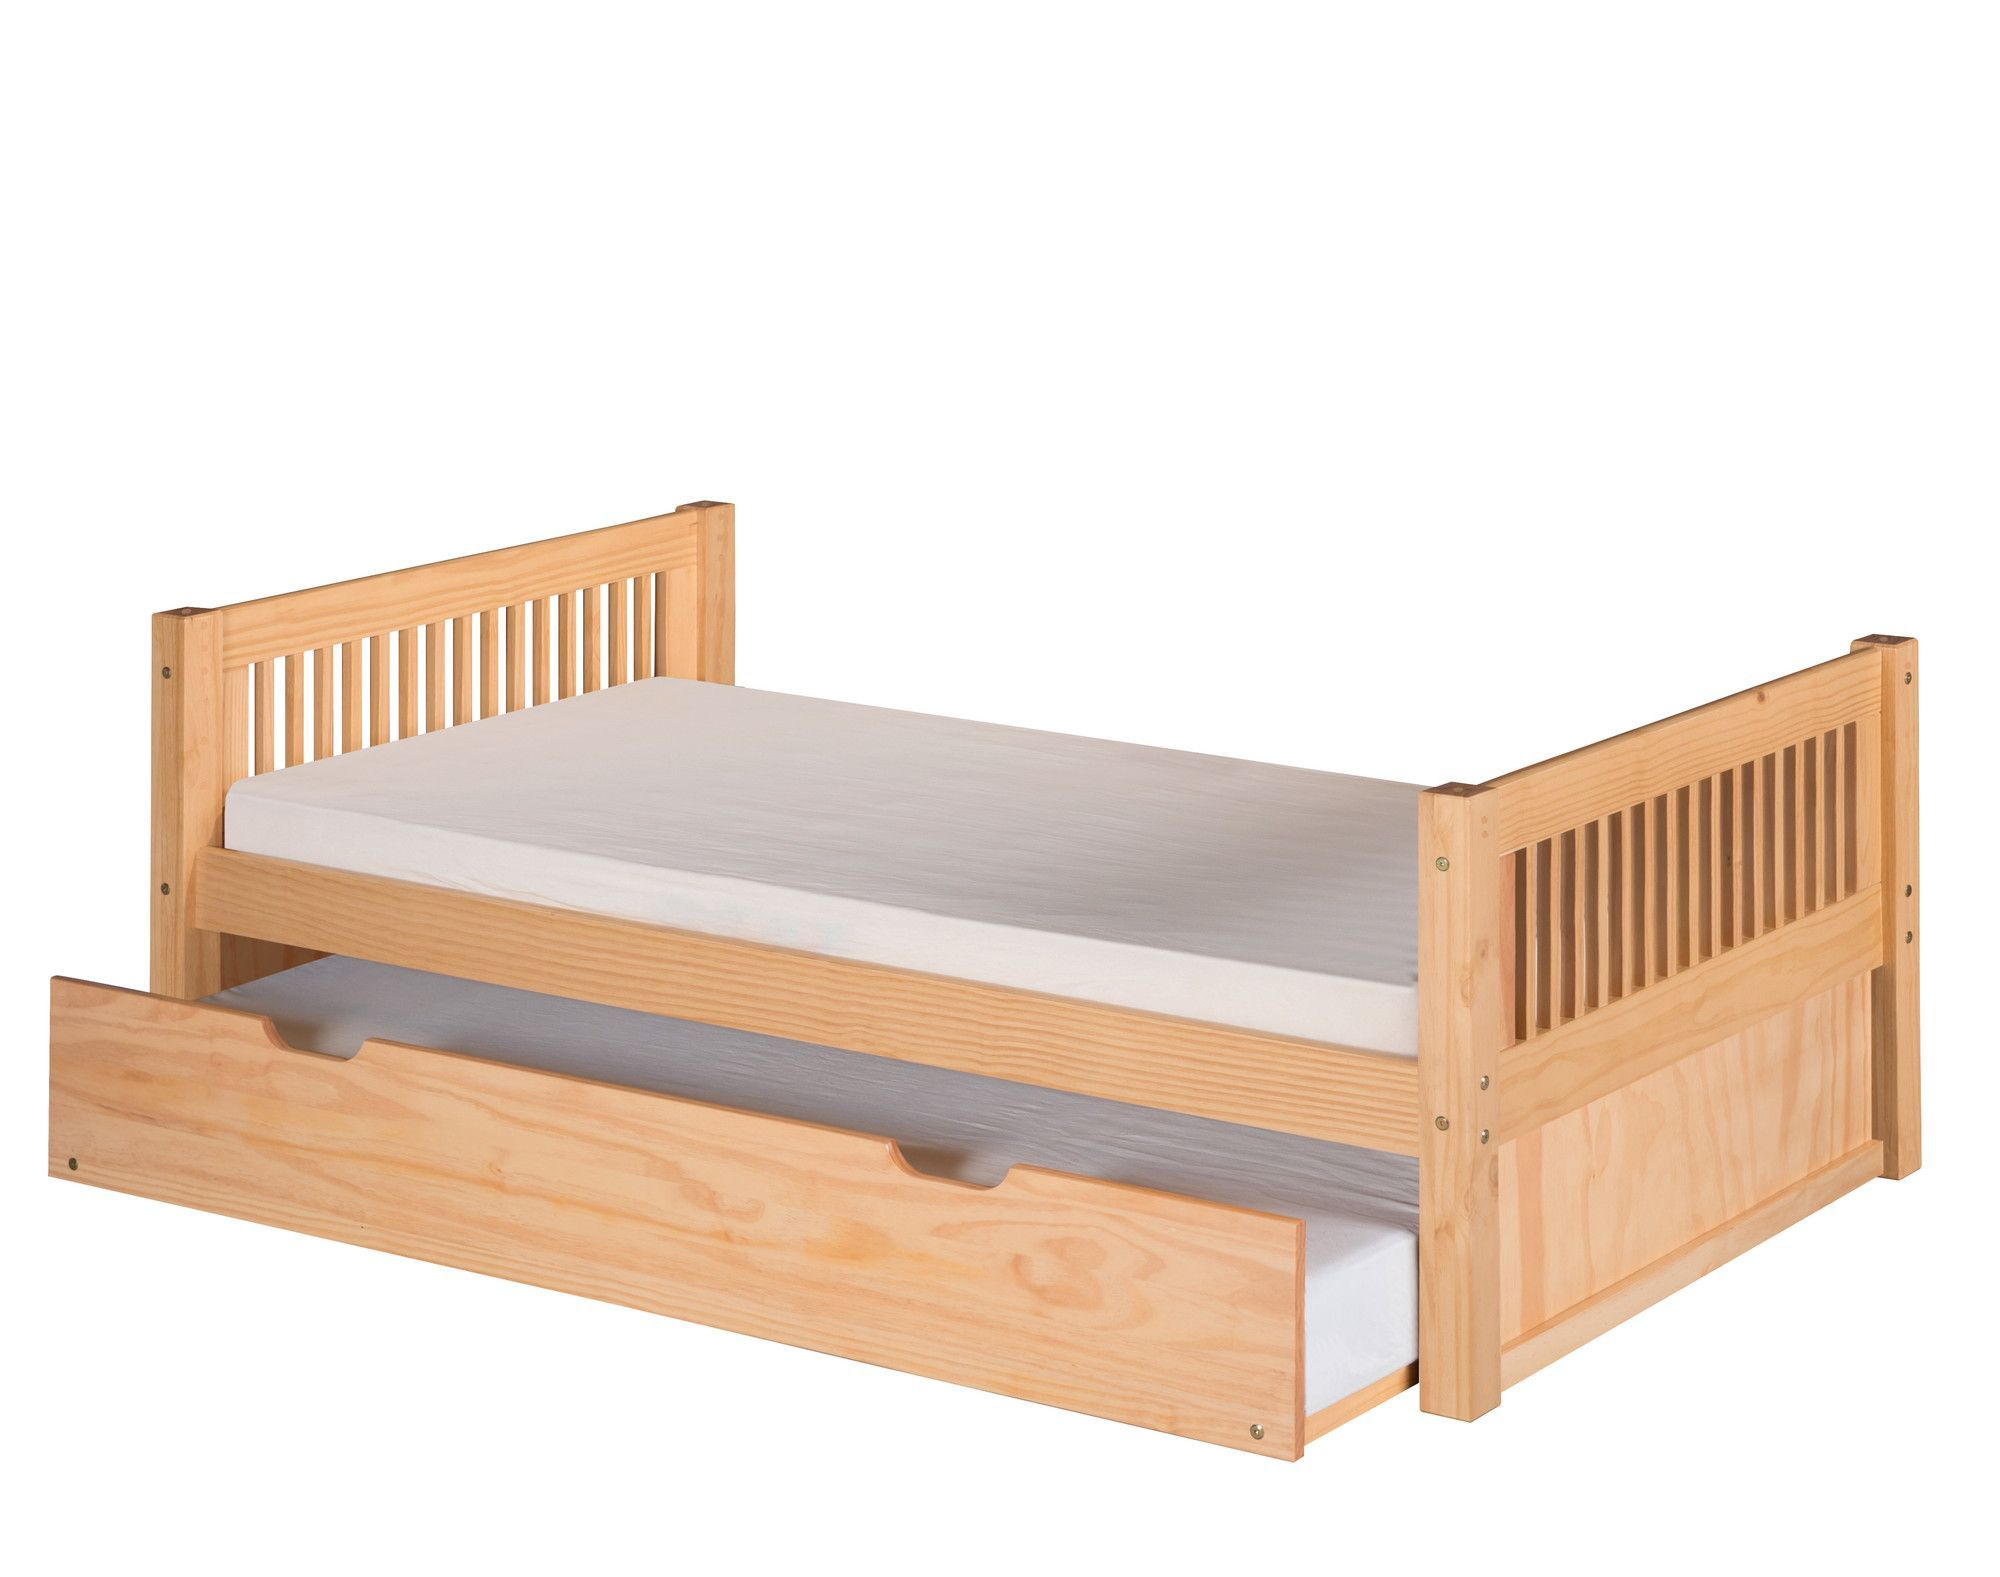 Twin loft bed dimensions  Twin Slat Bed with Trundle  Boysu beds  Pinterest  Twins